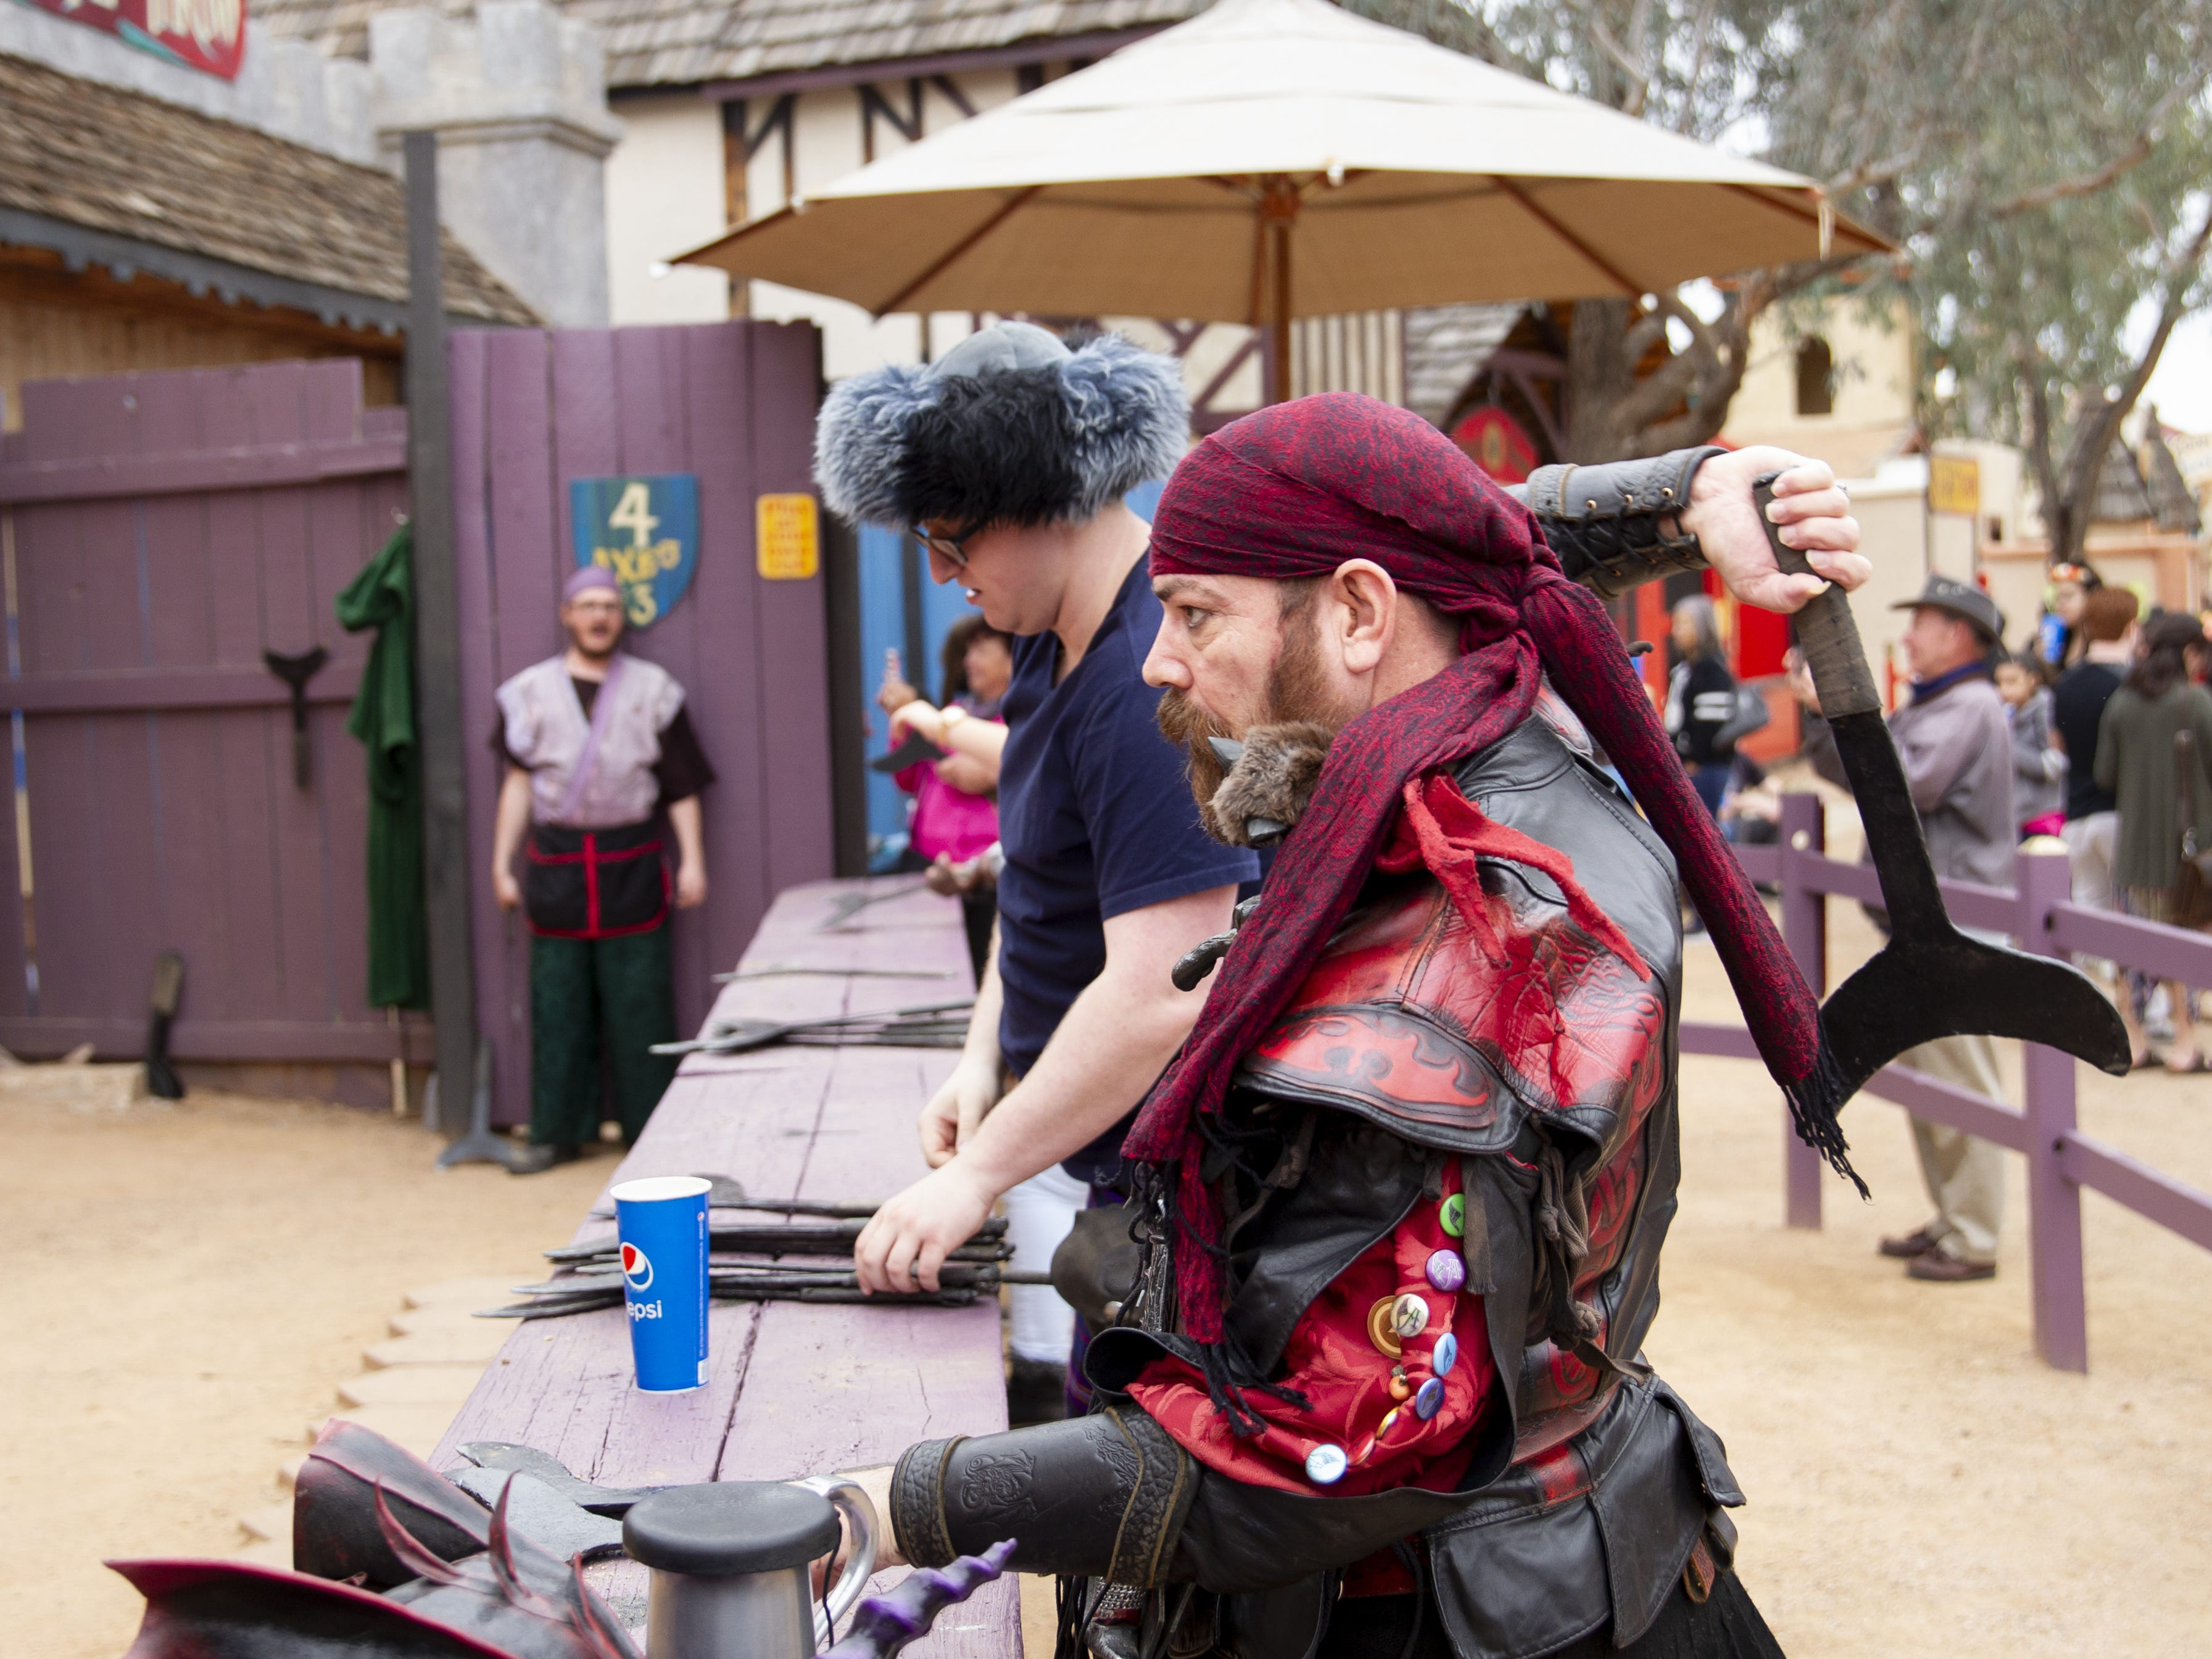 Marius Matt throws axes in a competition at the Arizona Renaissance Festival 2019 on Feb. 9, 2019 in Gold Canyon, Ariz.